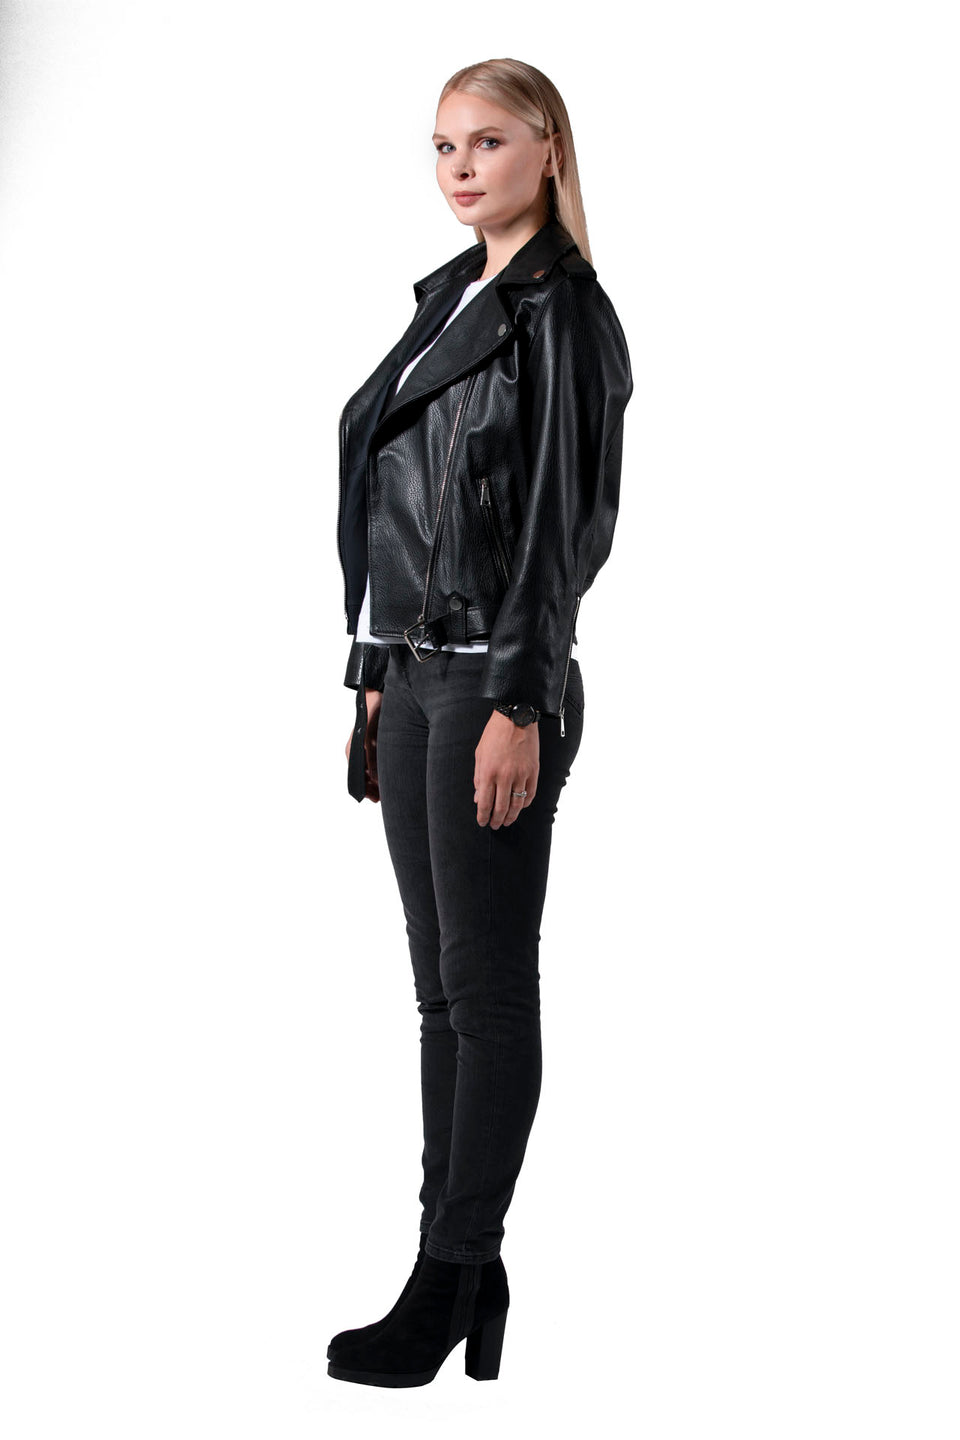 Megan - Women's Black Leather Jacket